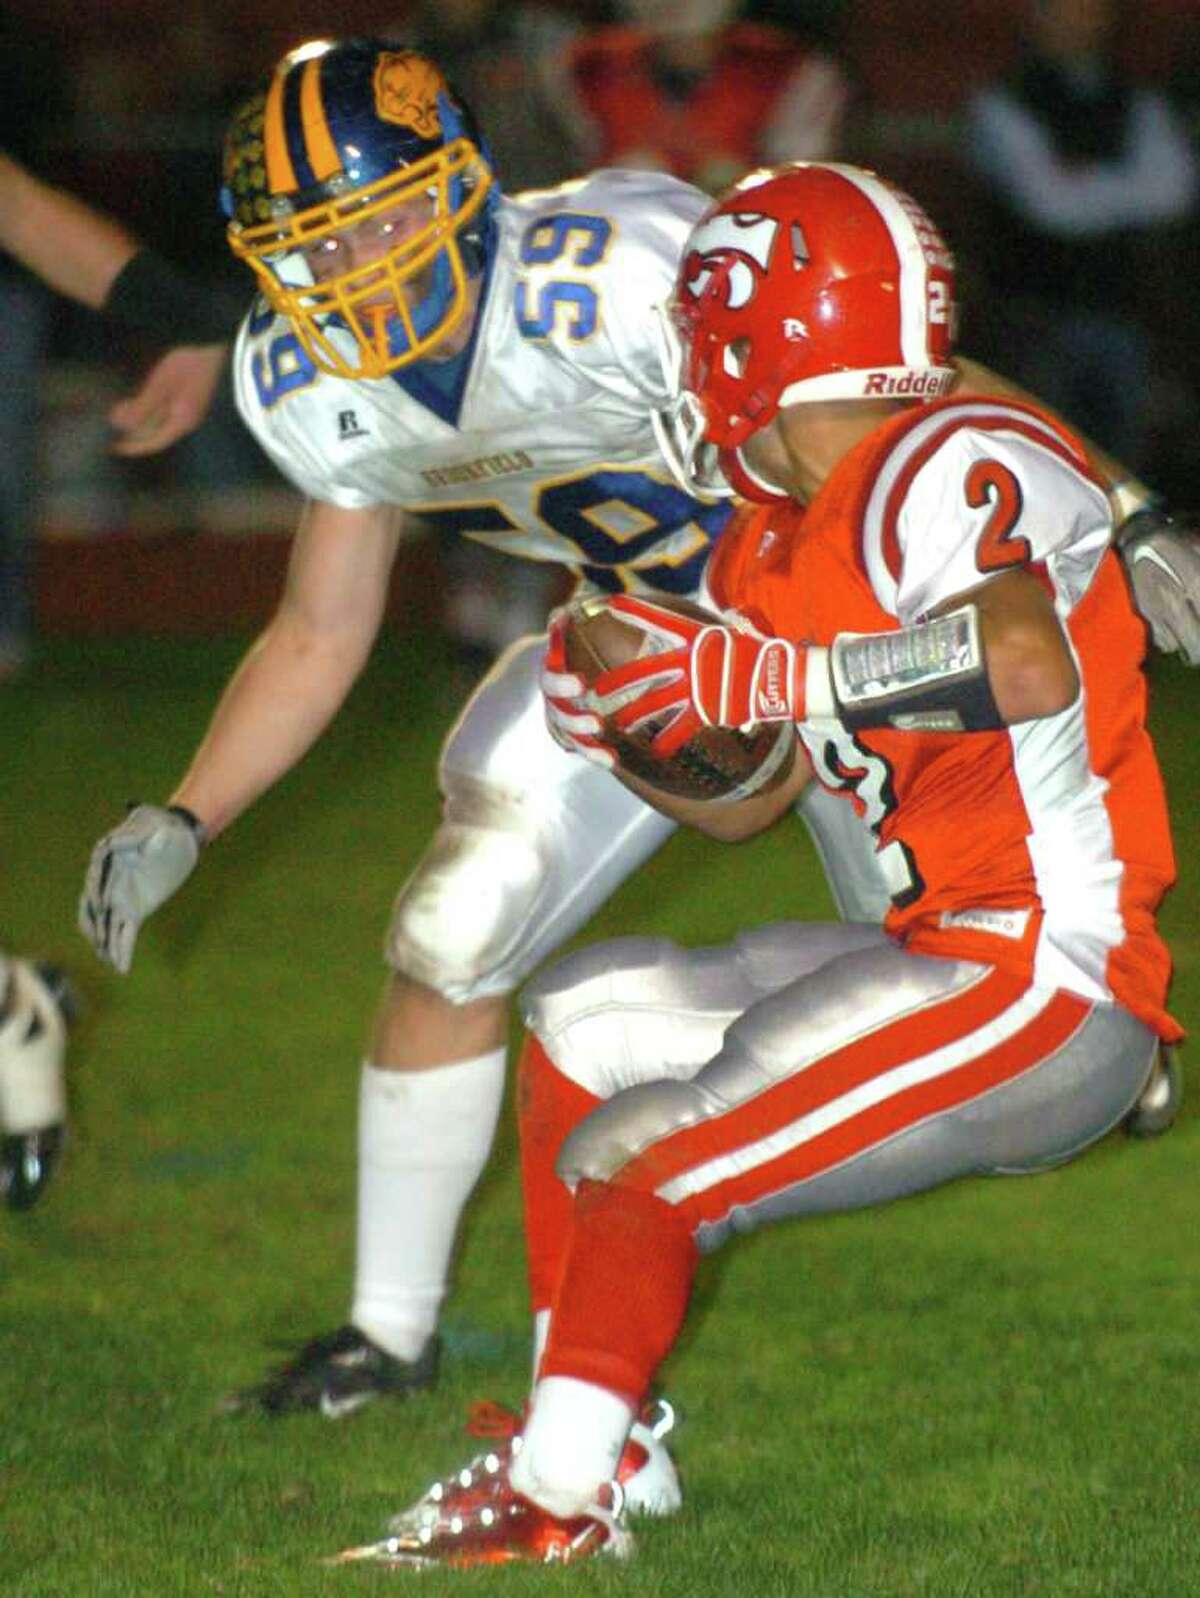 Masuk's 2, Tyler Perimenis, sets up for a pass while Brookfield's 59, Tyler Heckmann, blocks during the football game against Brookfield at Masuk Oct. 8, 2010.